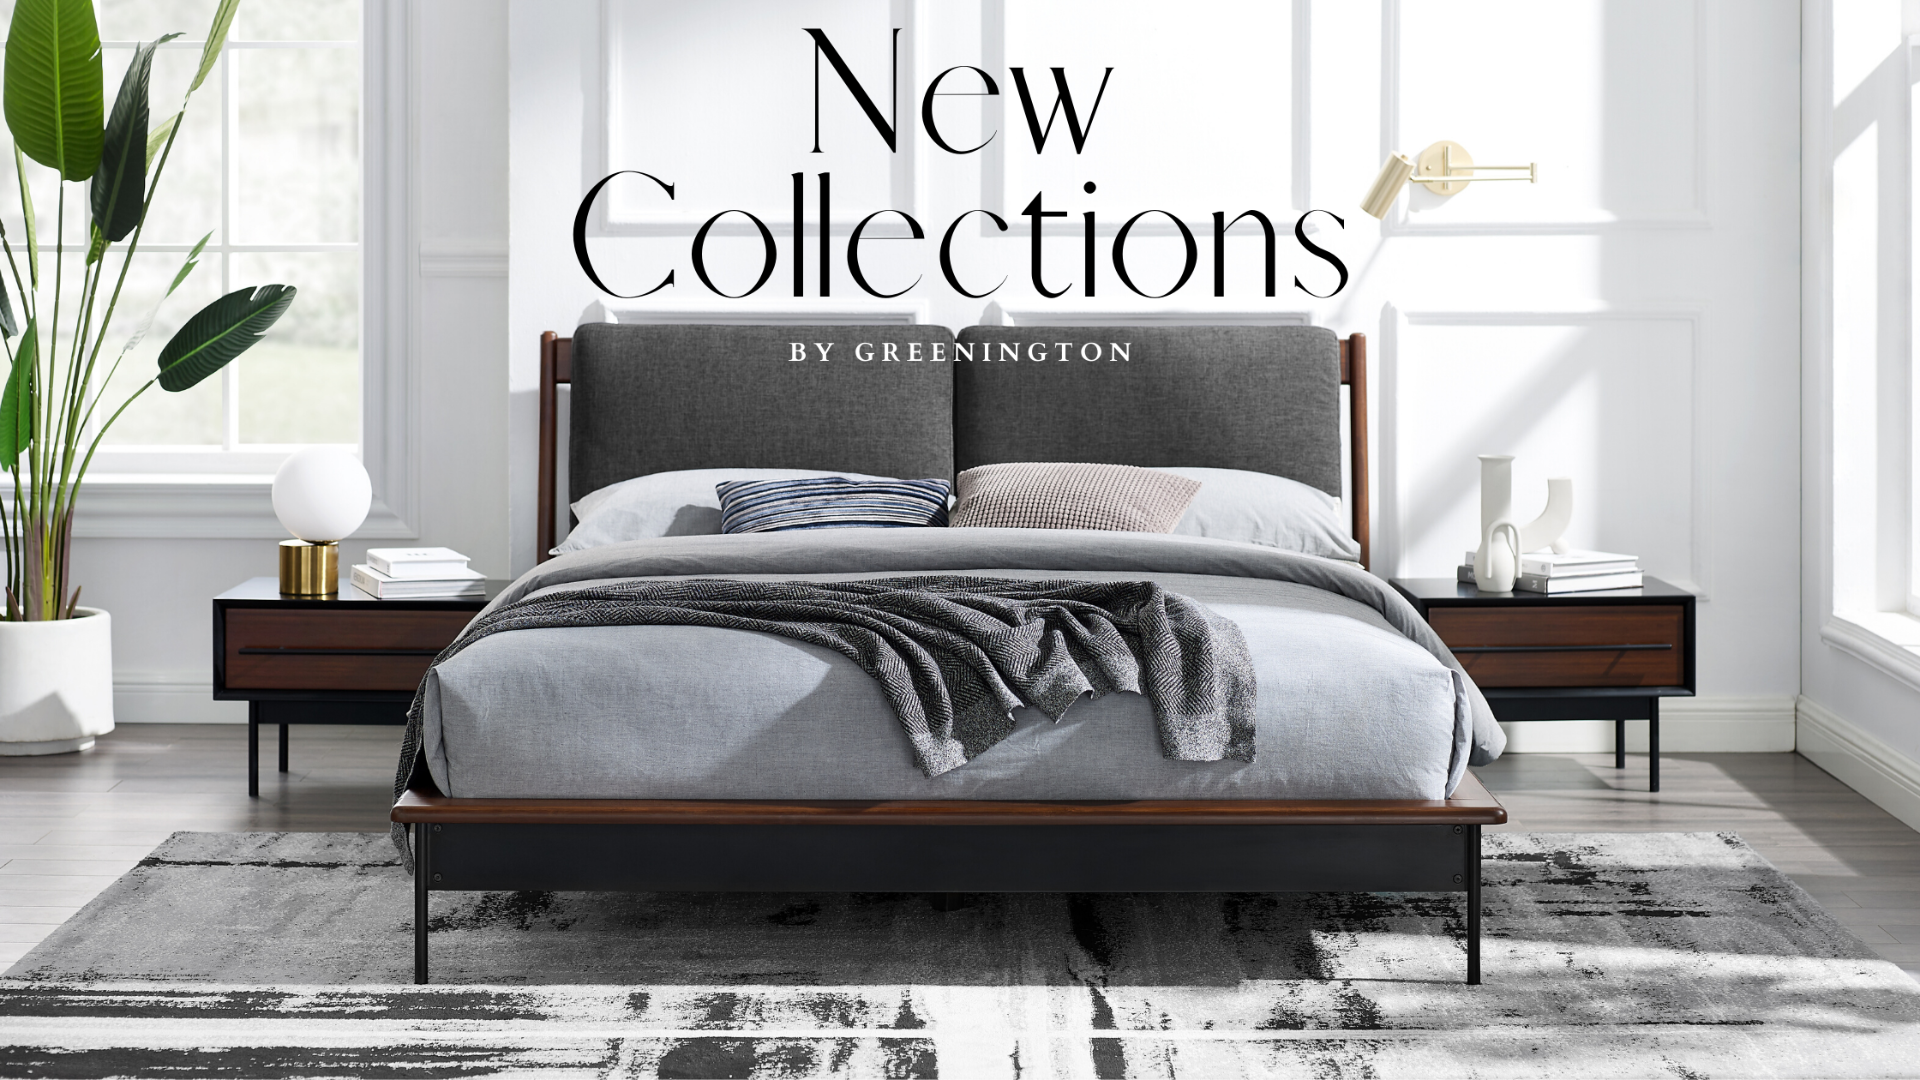 2020 New Greenington Collections